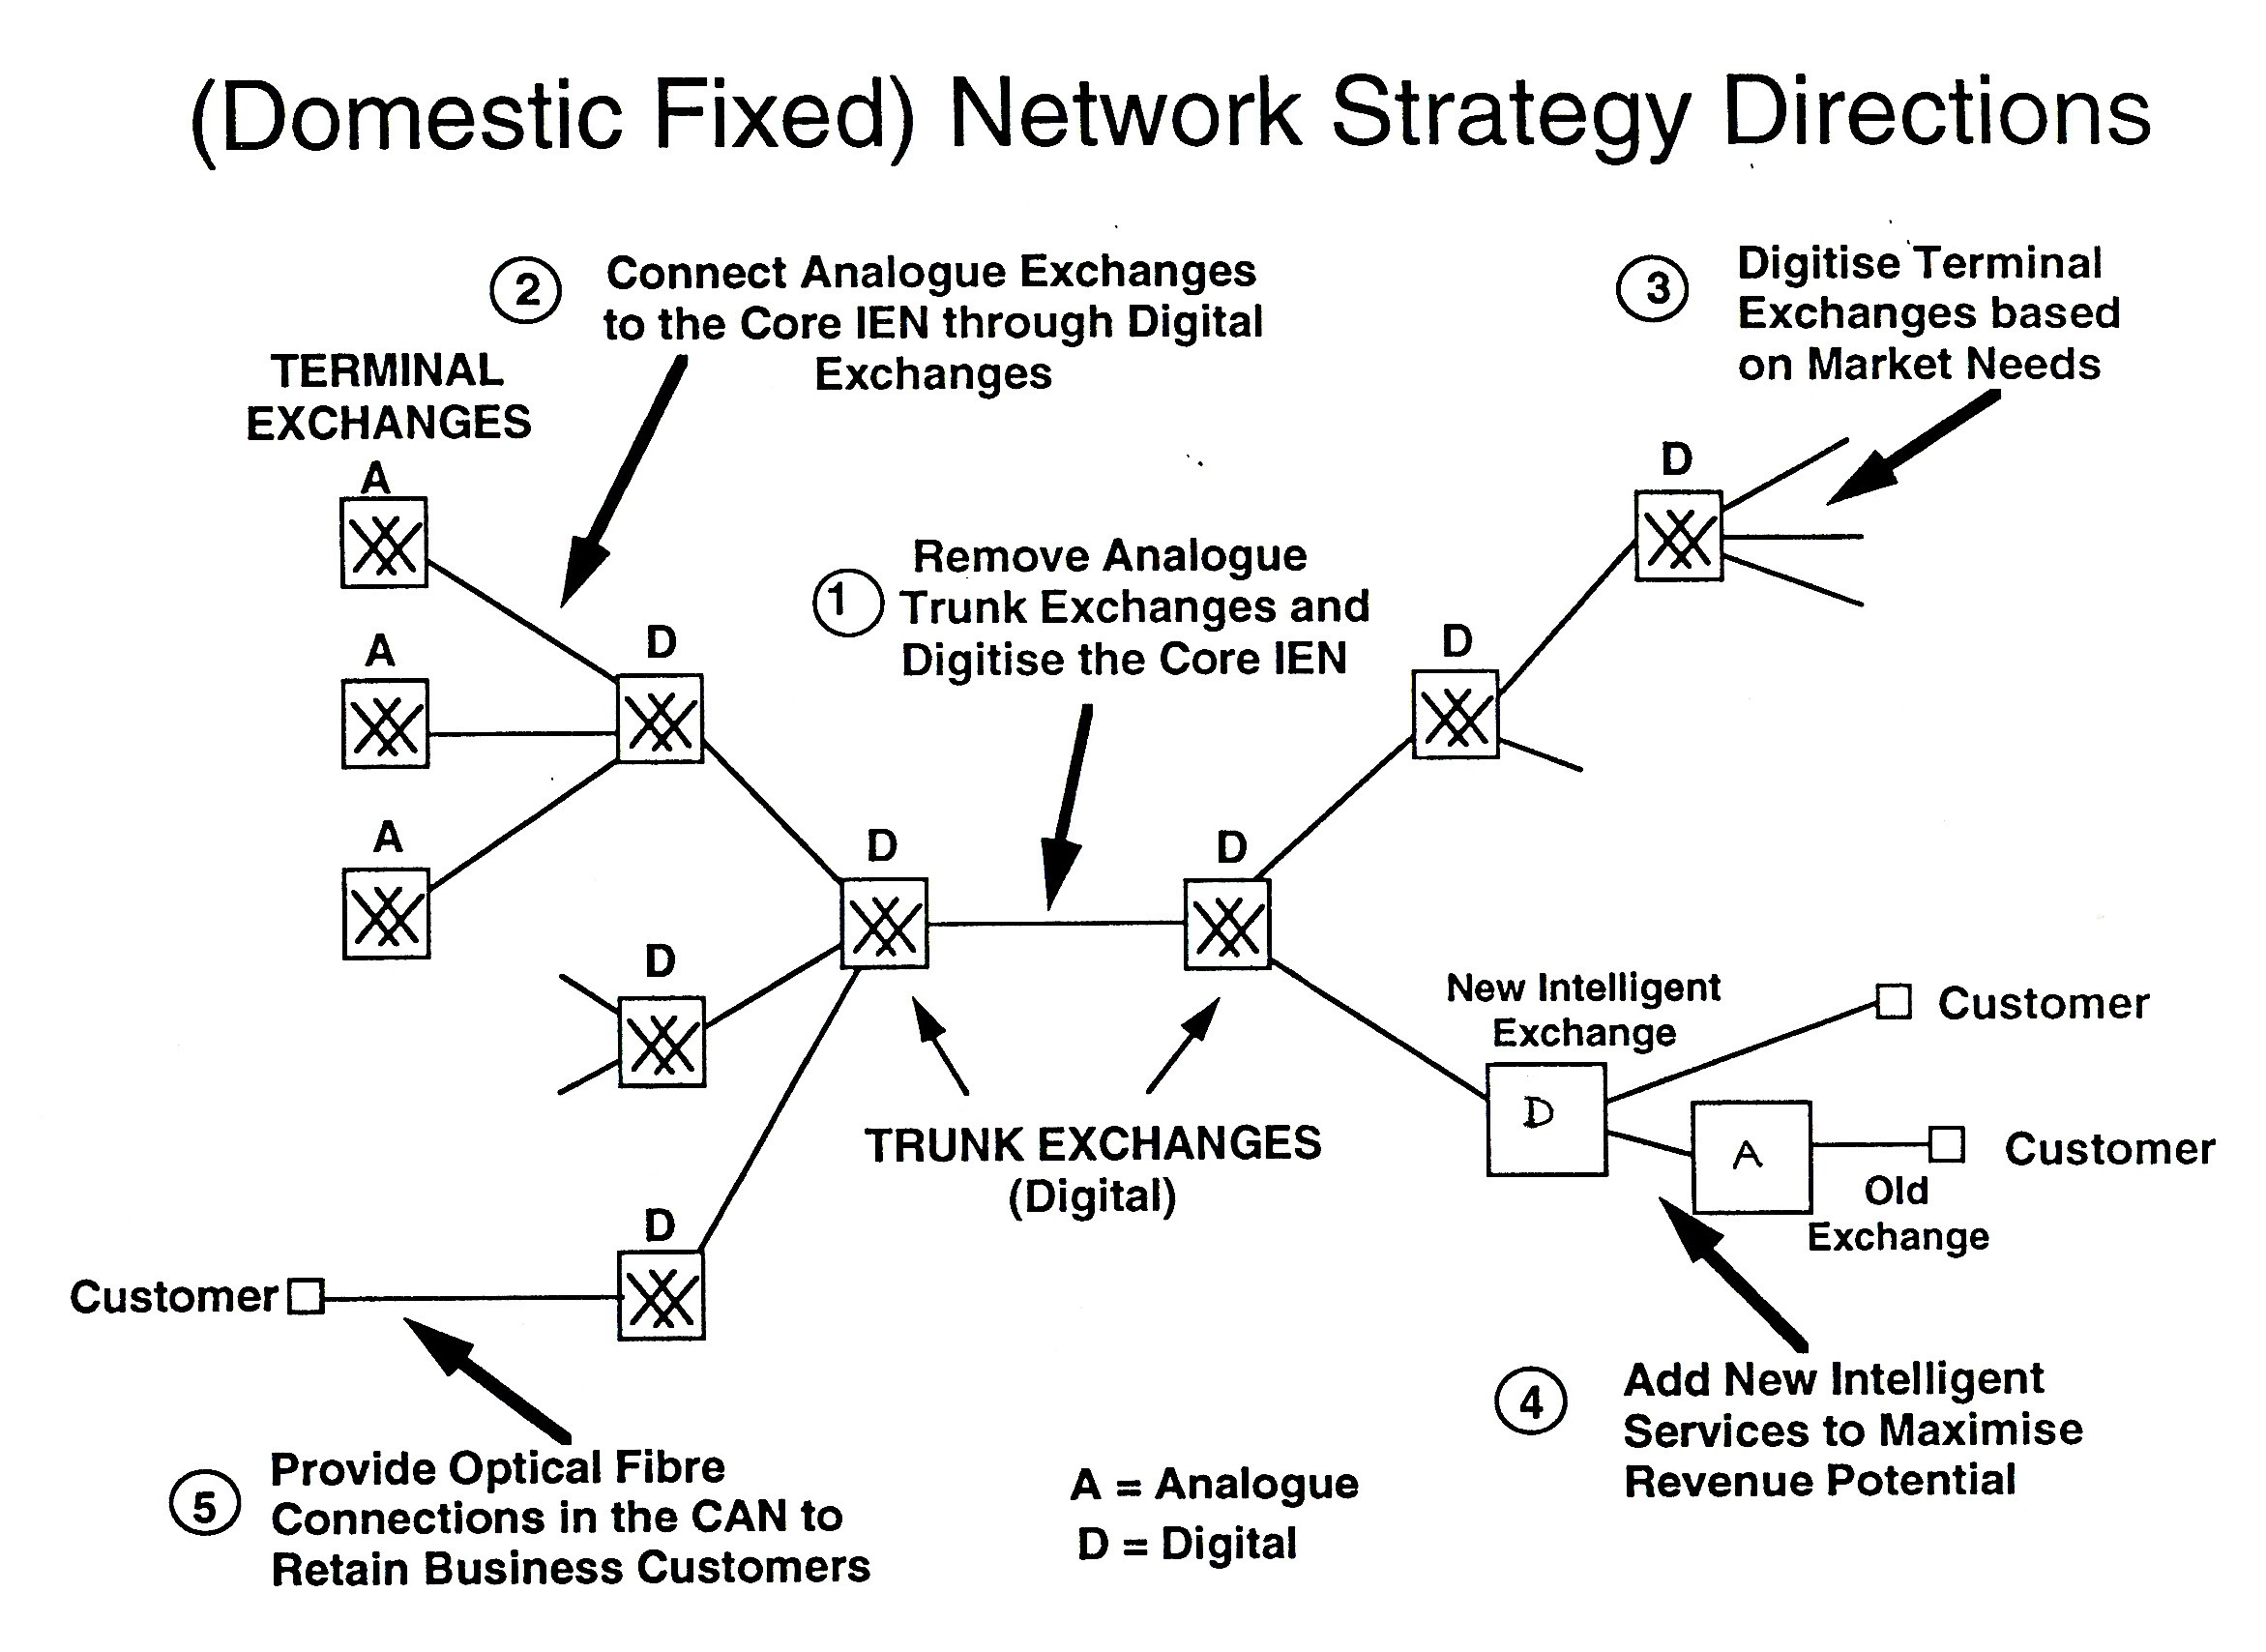 Figure 4. Plan D - A competitive Hybrid Analogue/Digital Network with Two Stages & Five Steps